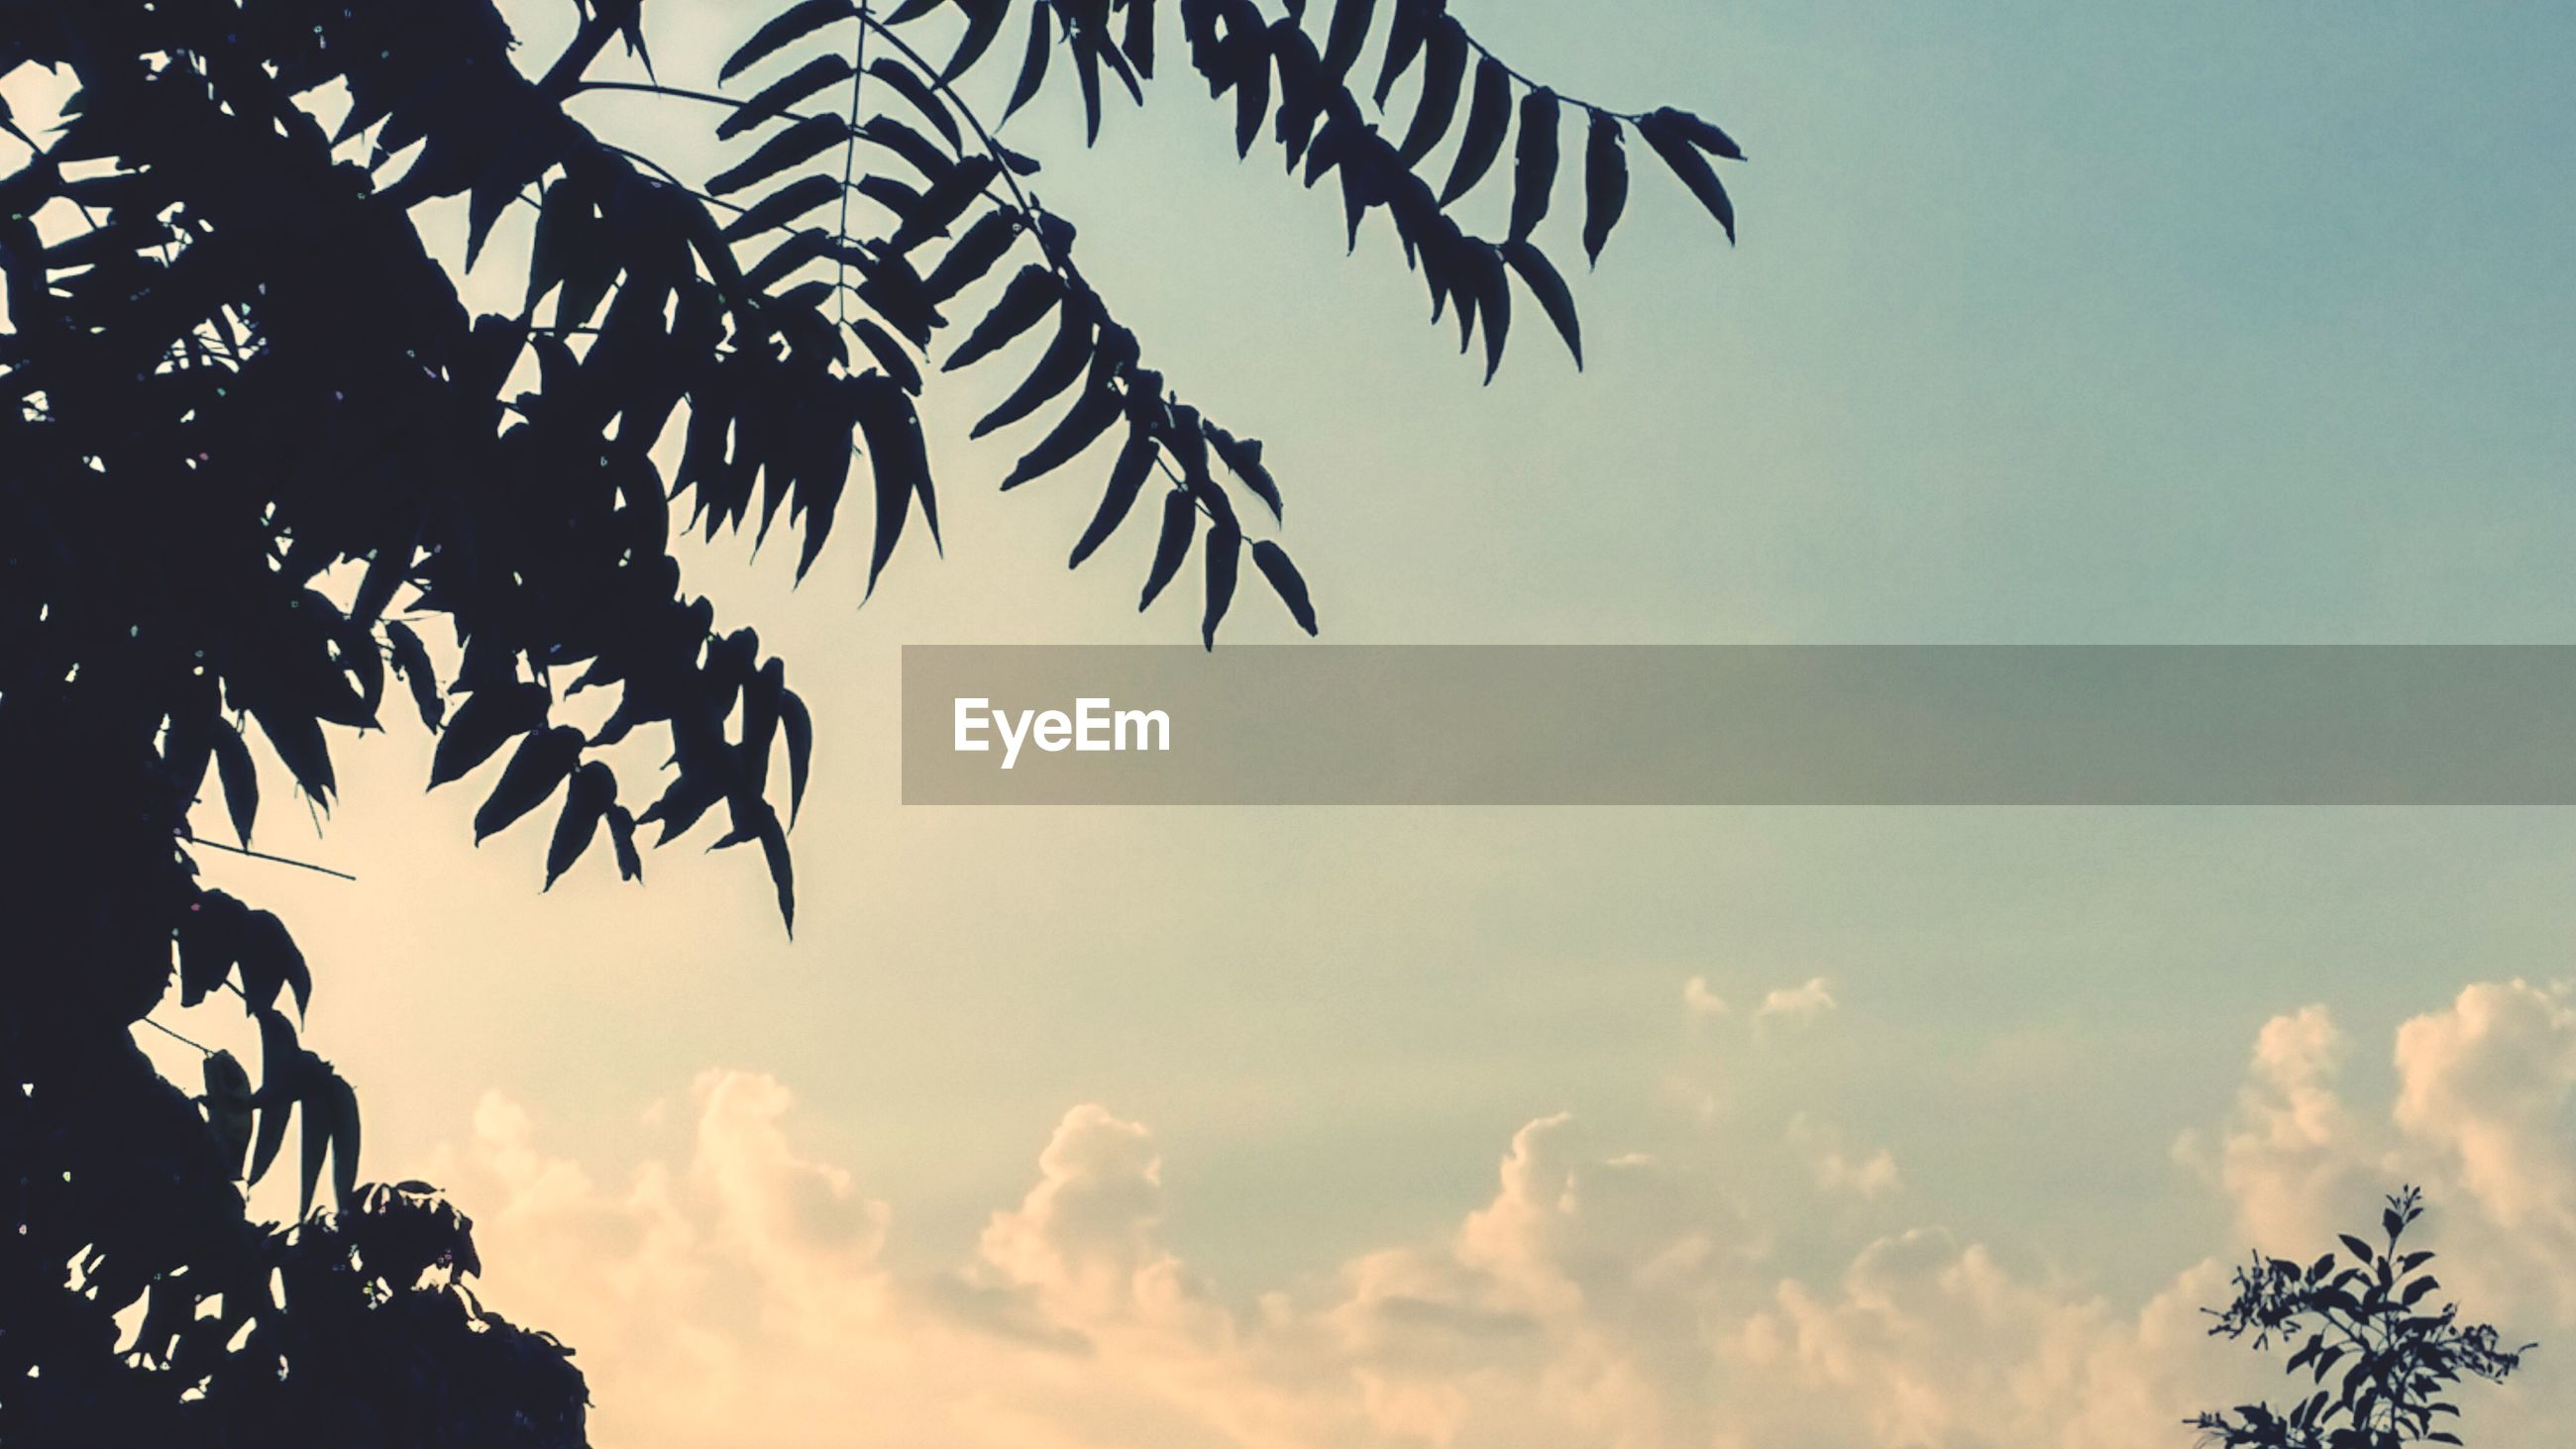 low angle view, sky, tree, cloud - sky, nature, silhouette, beauty in nature, growth, tranquility, cloud, branch, palm tree, cloudy, high section, scenics, sunset, outdoors, leaf, no people, day